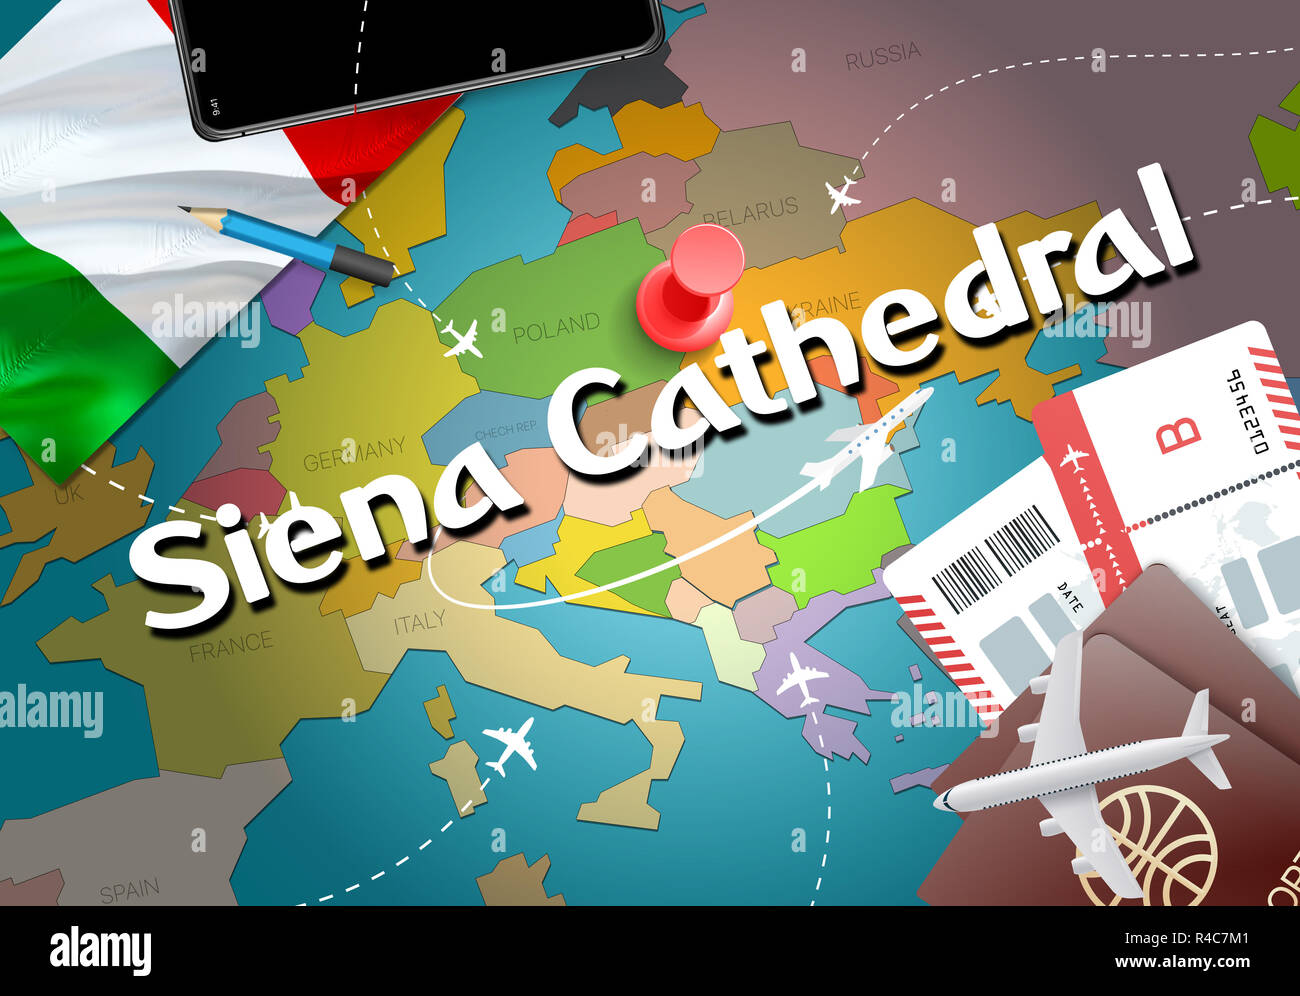 Siena Cathedral City Travel And Tourism Destination Concept Italy